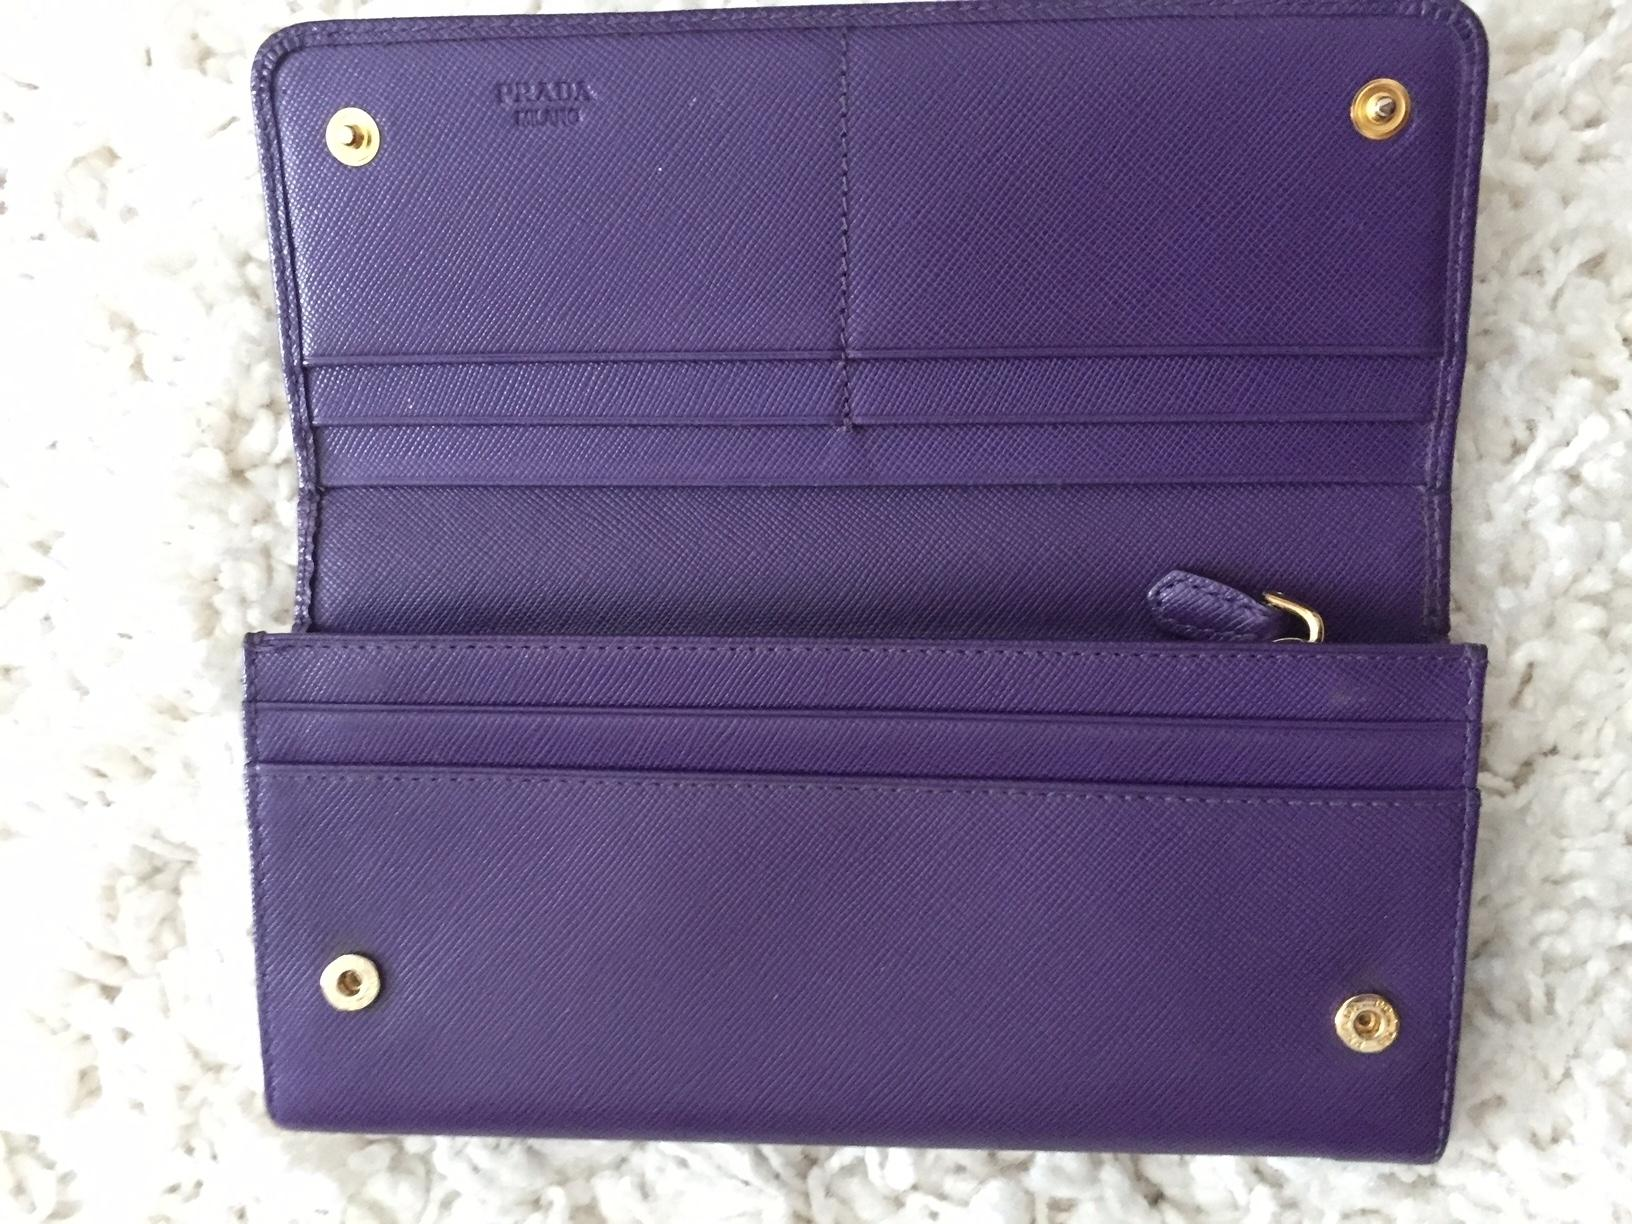 9c57bcc2bc67 ... buy prada purple box saffiano vivid leather long travel w wallet  tradesy 78d92 b1cce